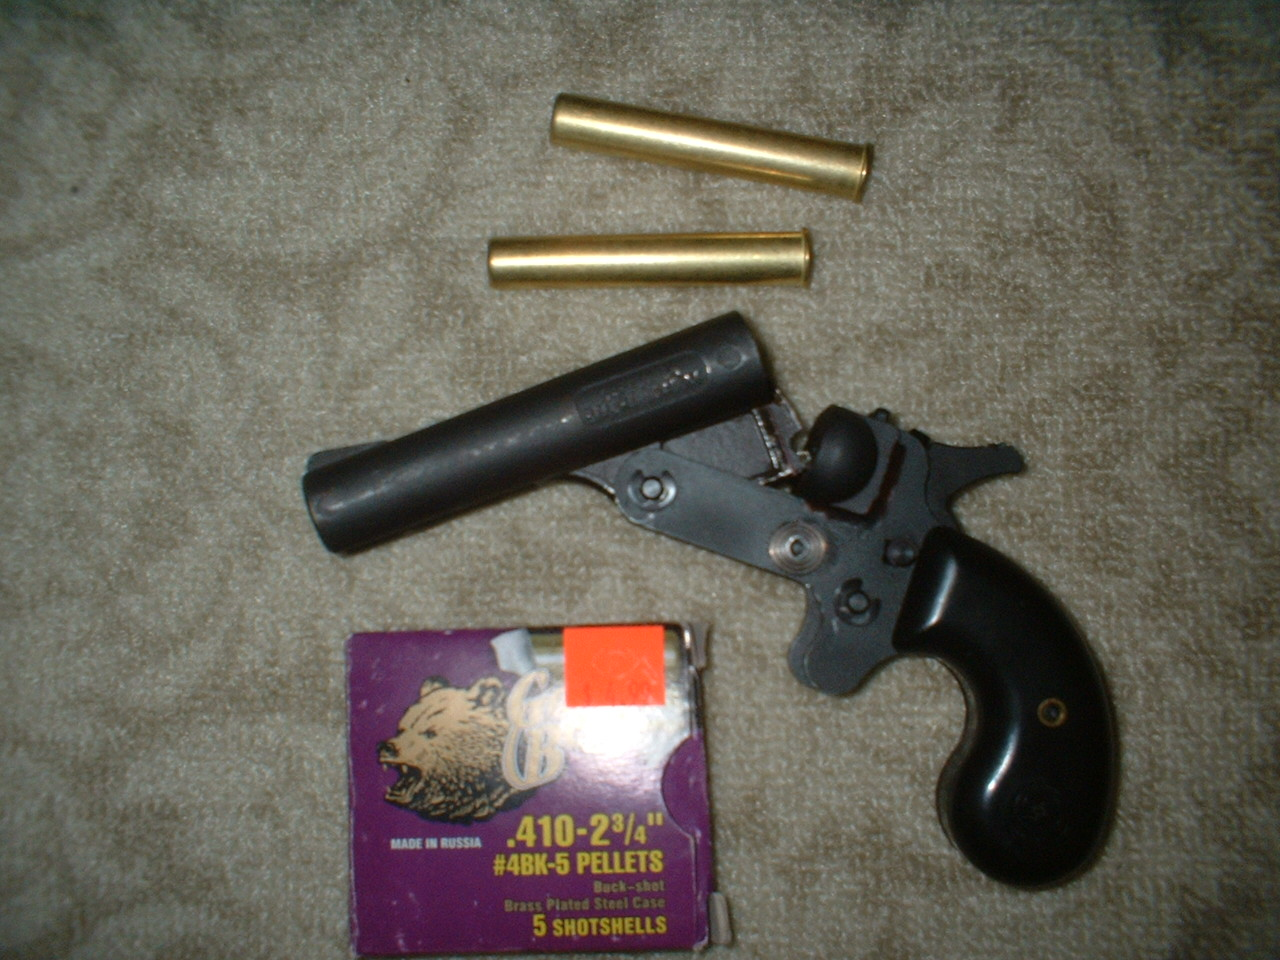 Any info about the Leinad derringer?